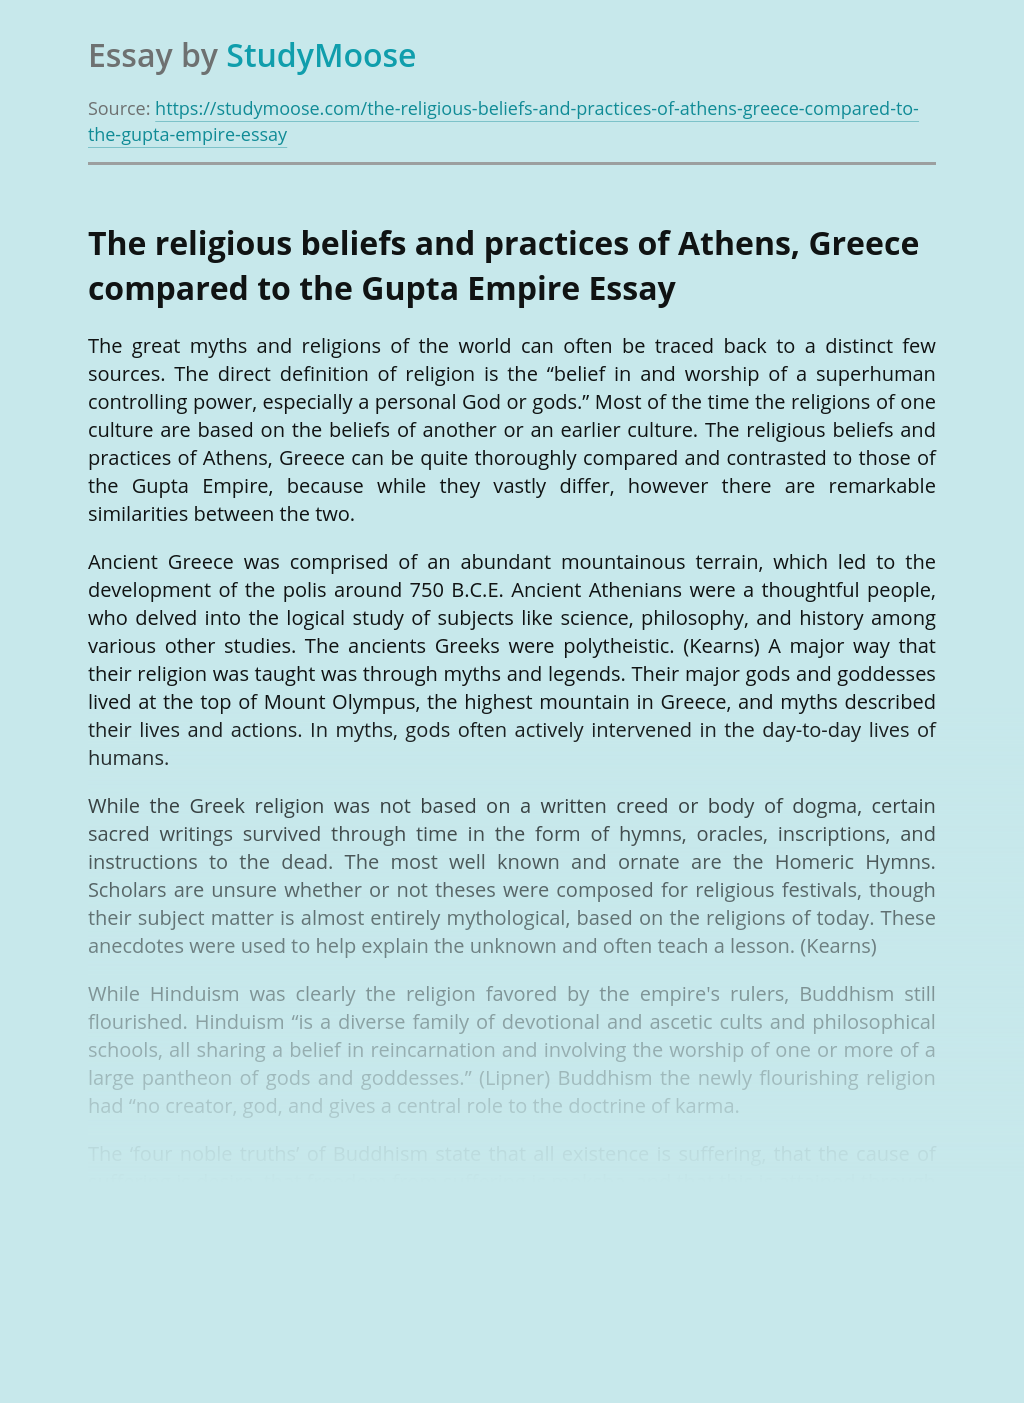 The religious beliefs and practices of Athens, Greece compared to the Gupta Empire